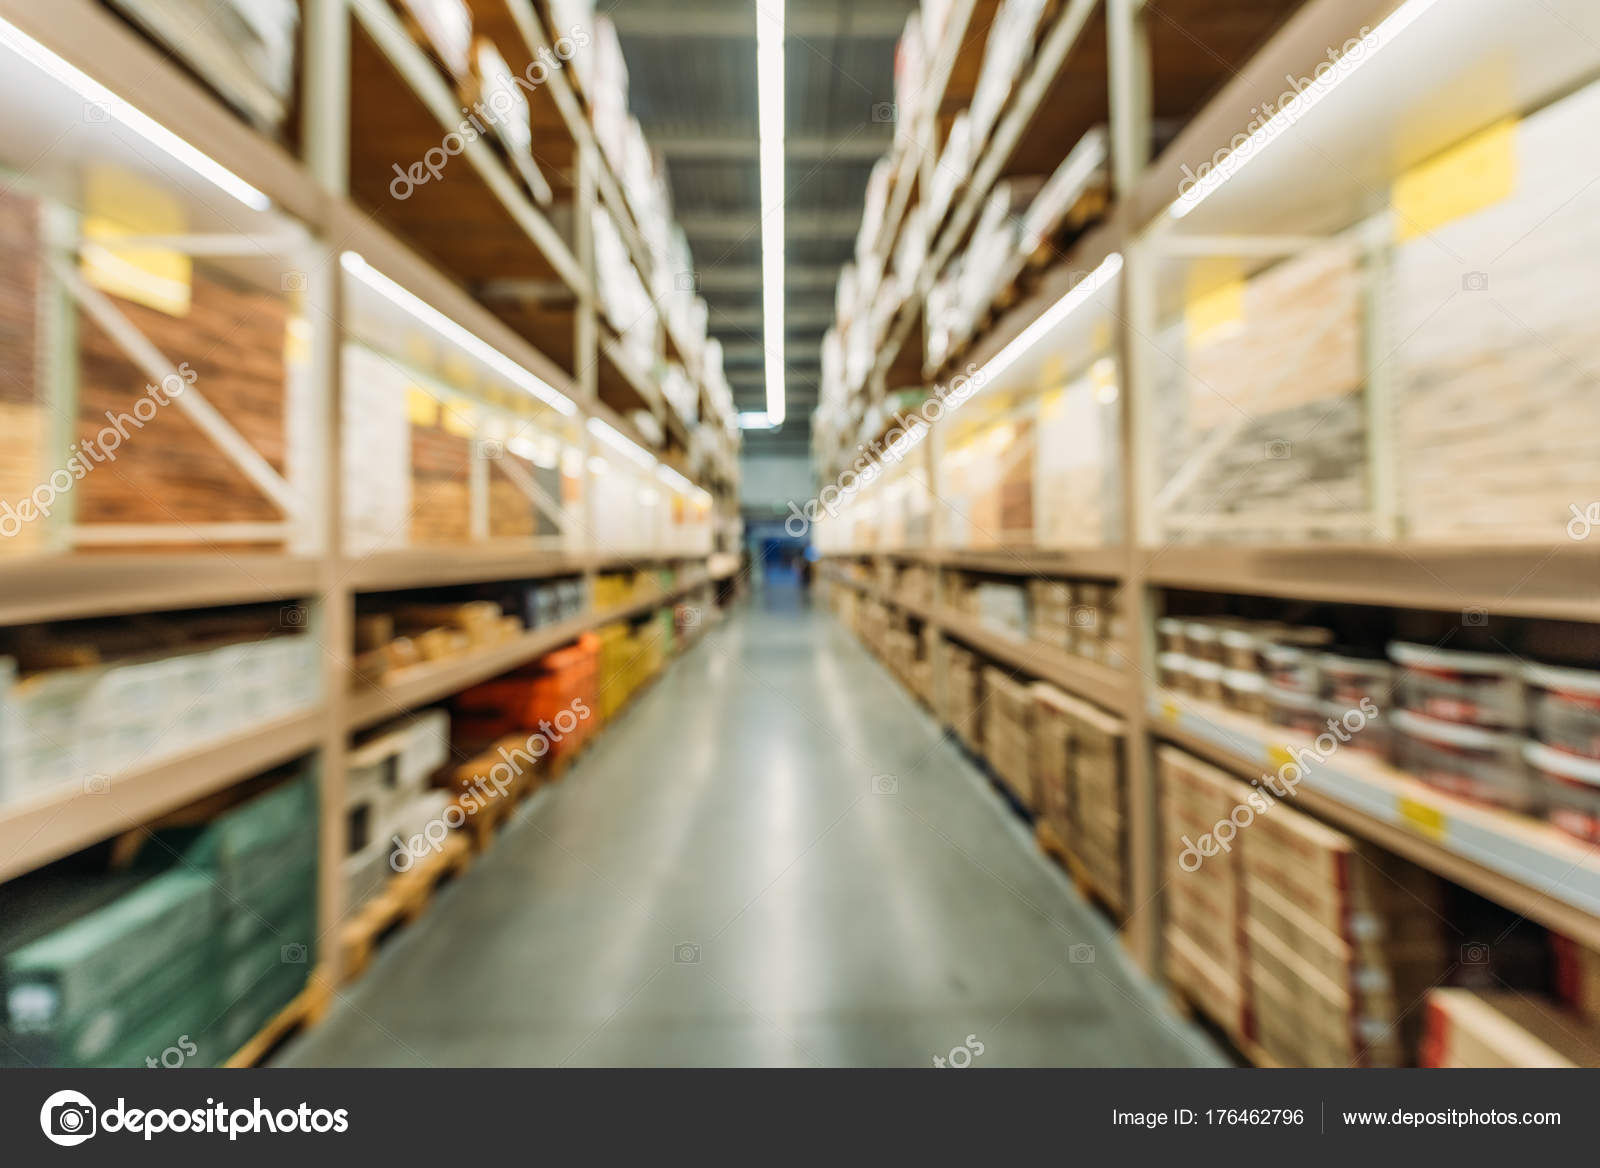 Blurred View Shelves Boxes Storage — Stock Photo